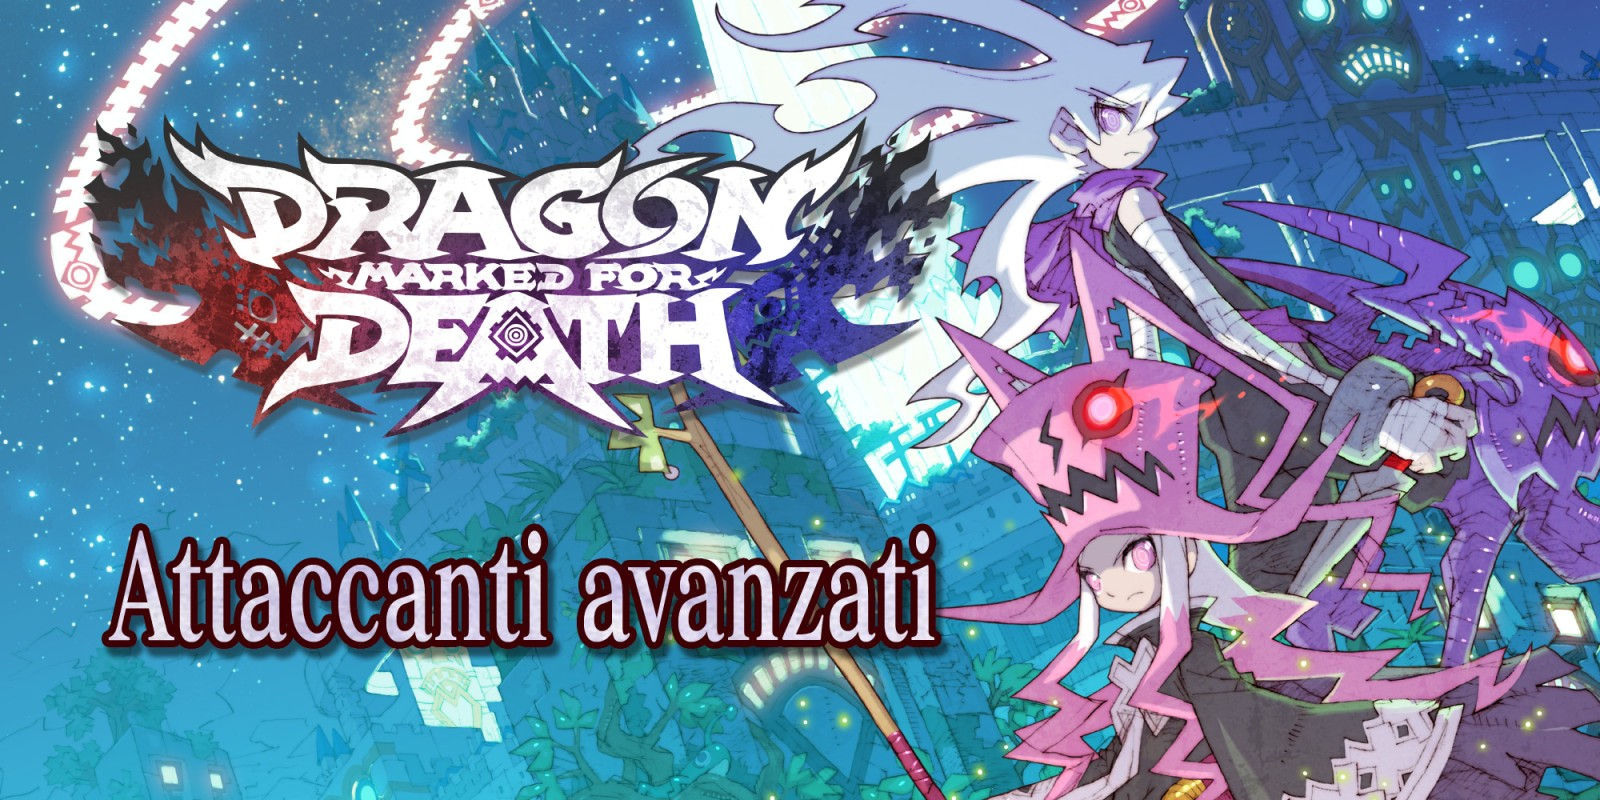 Dragon Marked for Death: Attaccanti avanzati